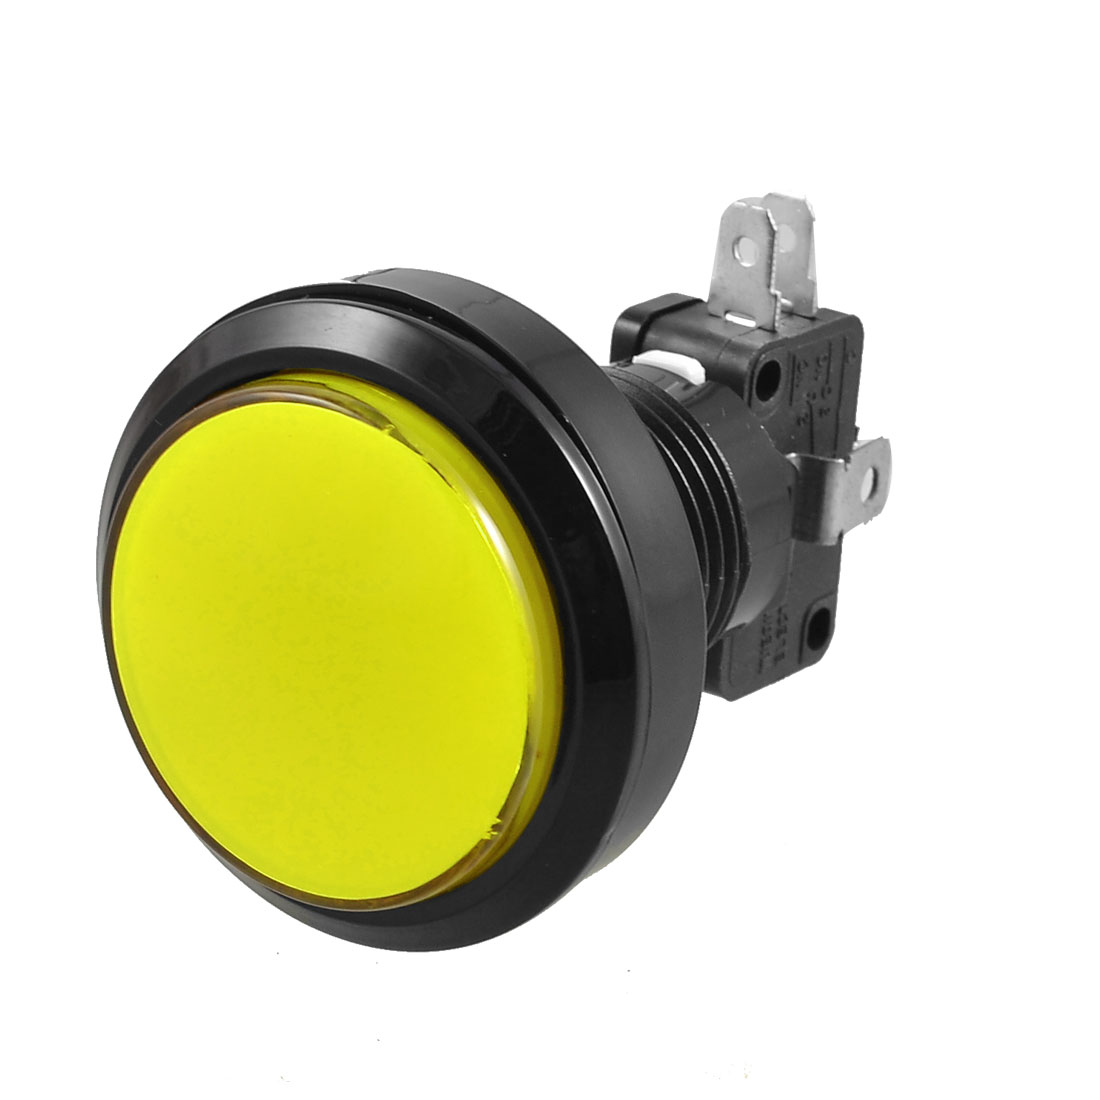 Yellow LED Lamp 36mm Dia Round Push Button w Limit Switch for Arcade Video Game